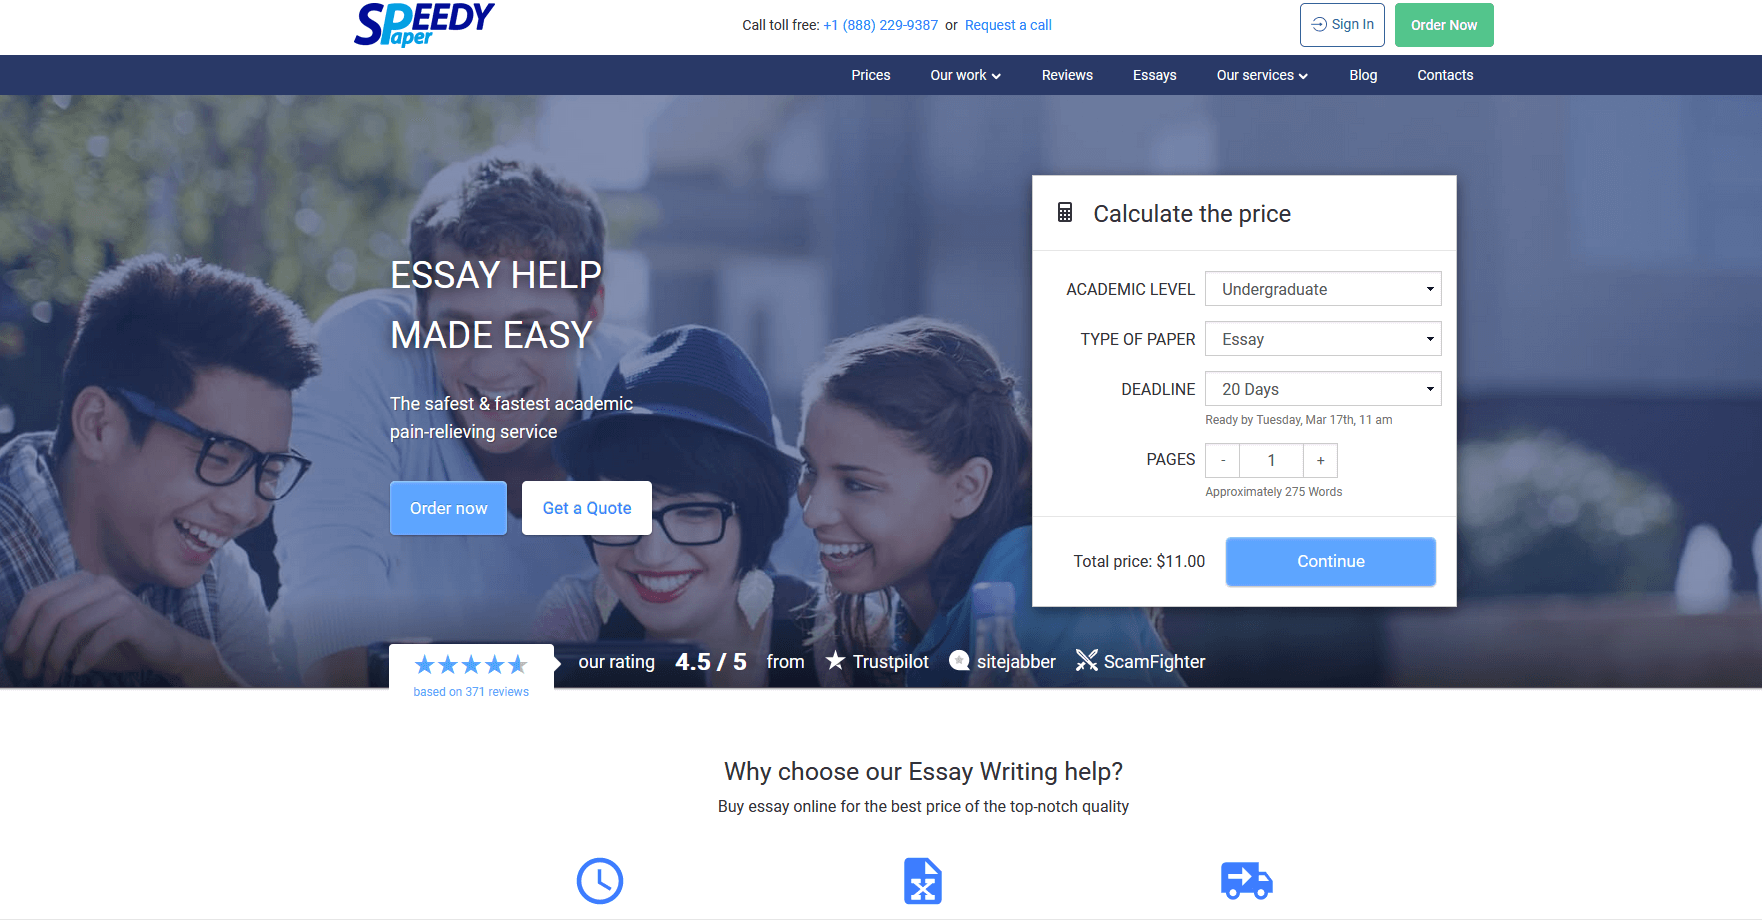 Speedypaper.com Writing Service Review by TheLegitEssay